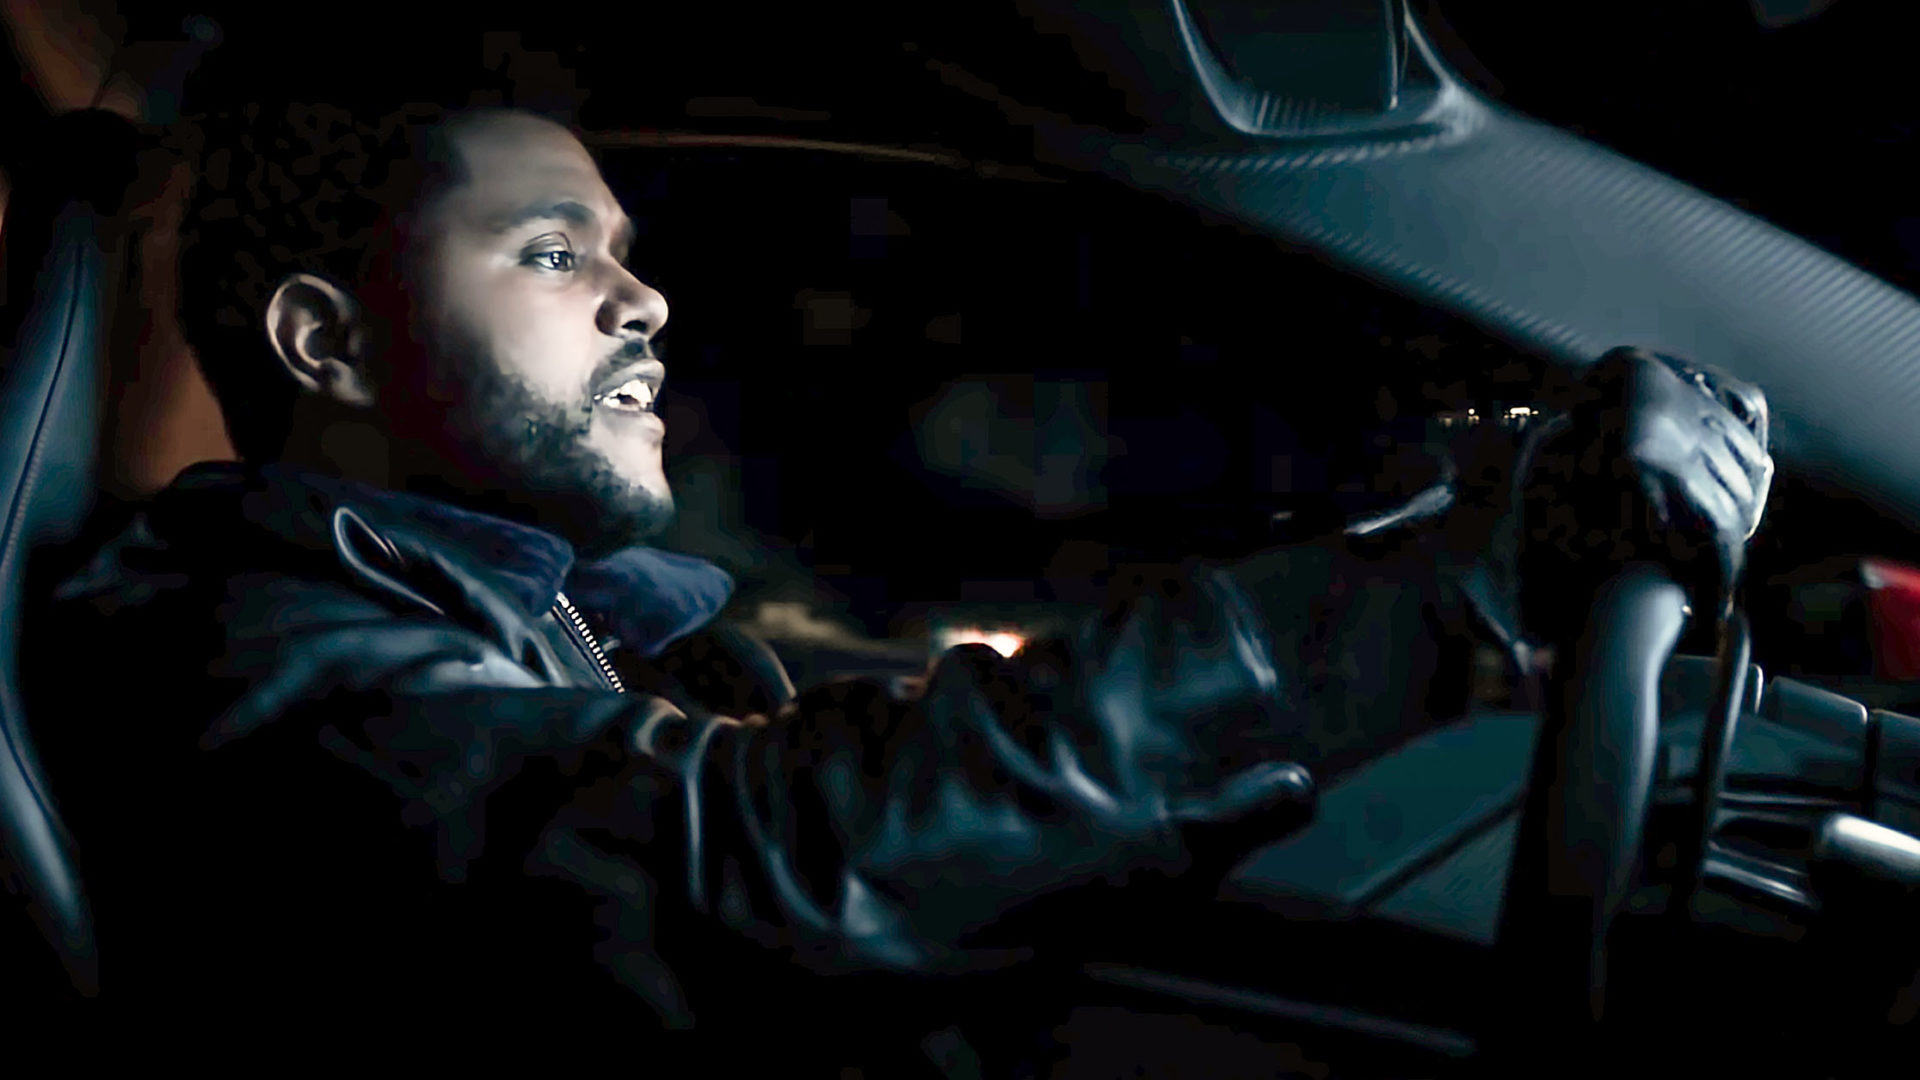 The Weeknd Driving